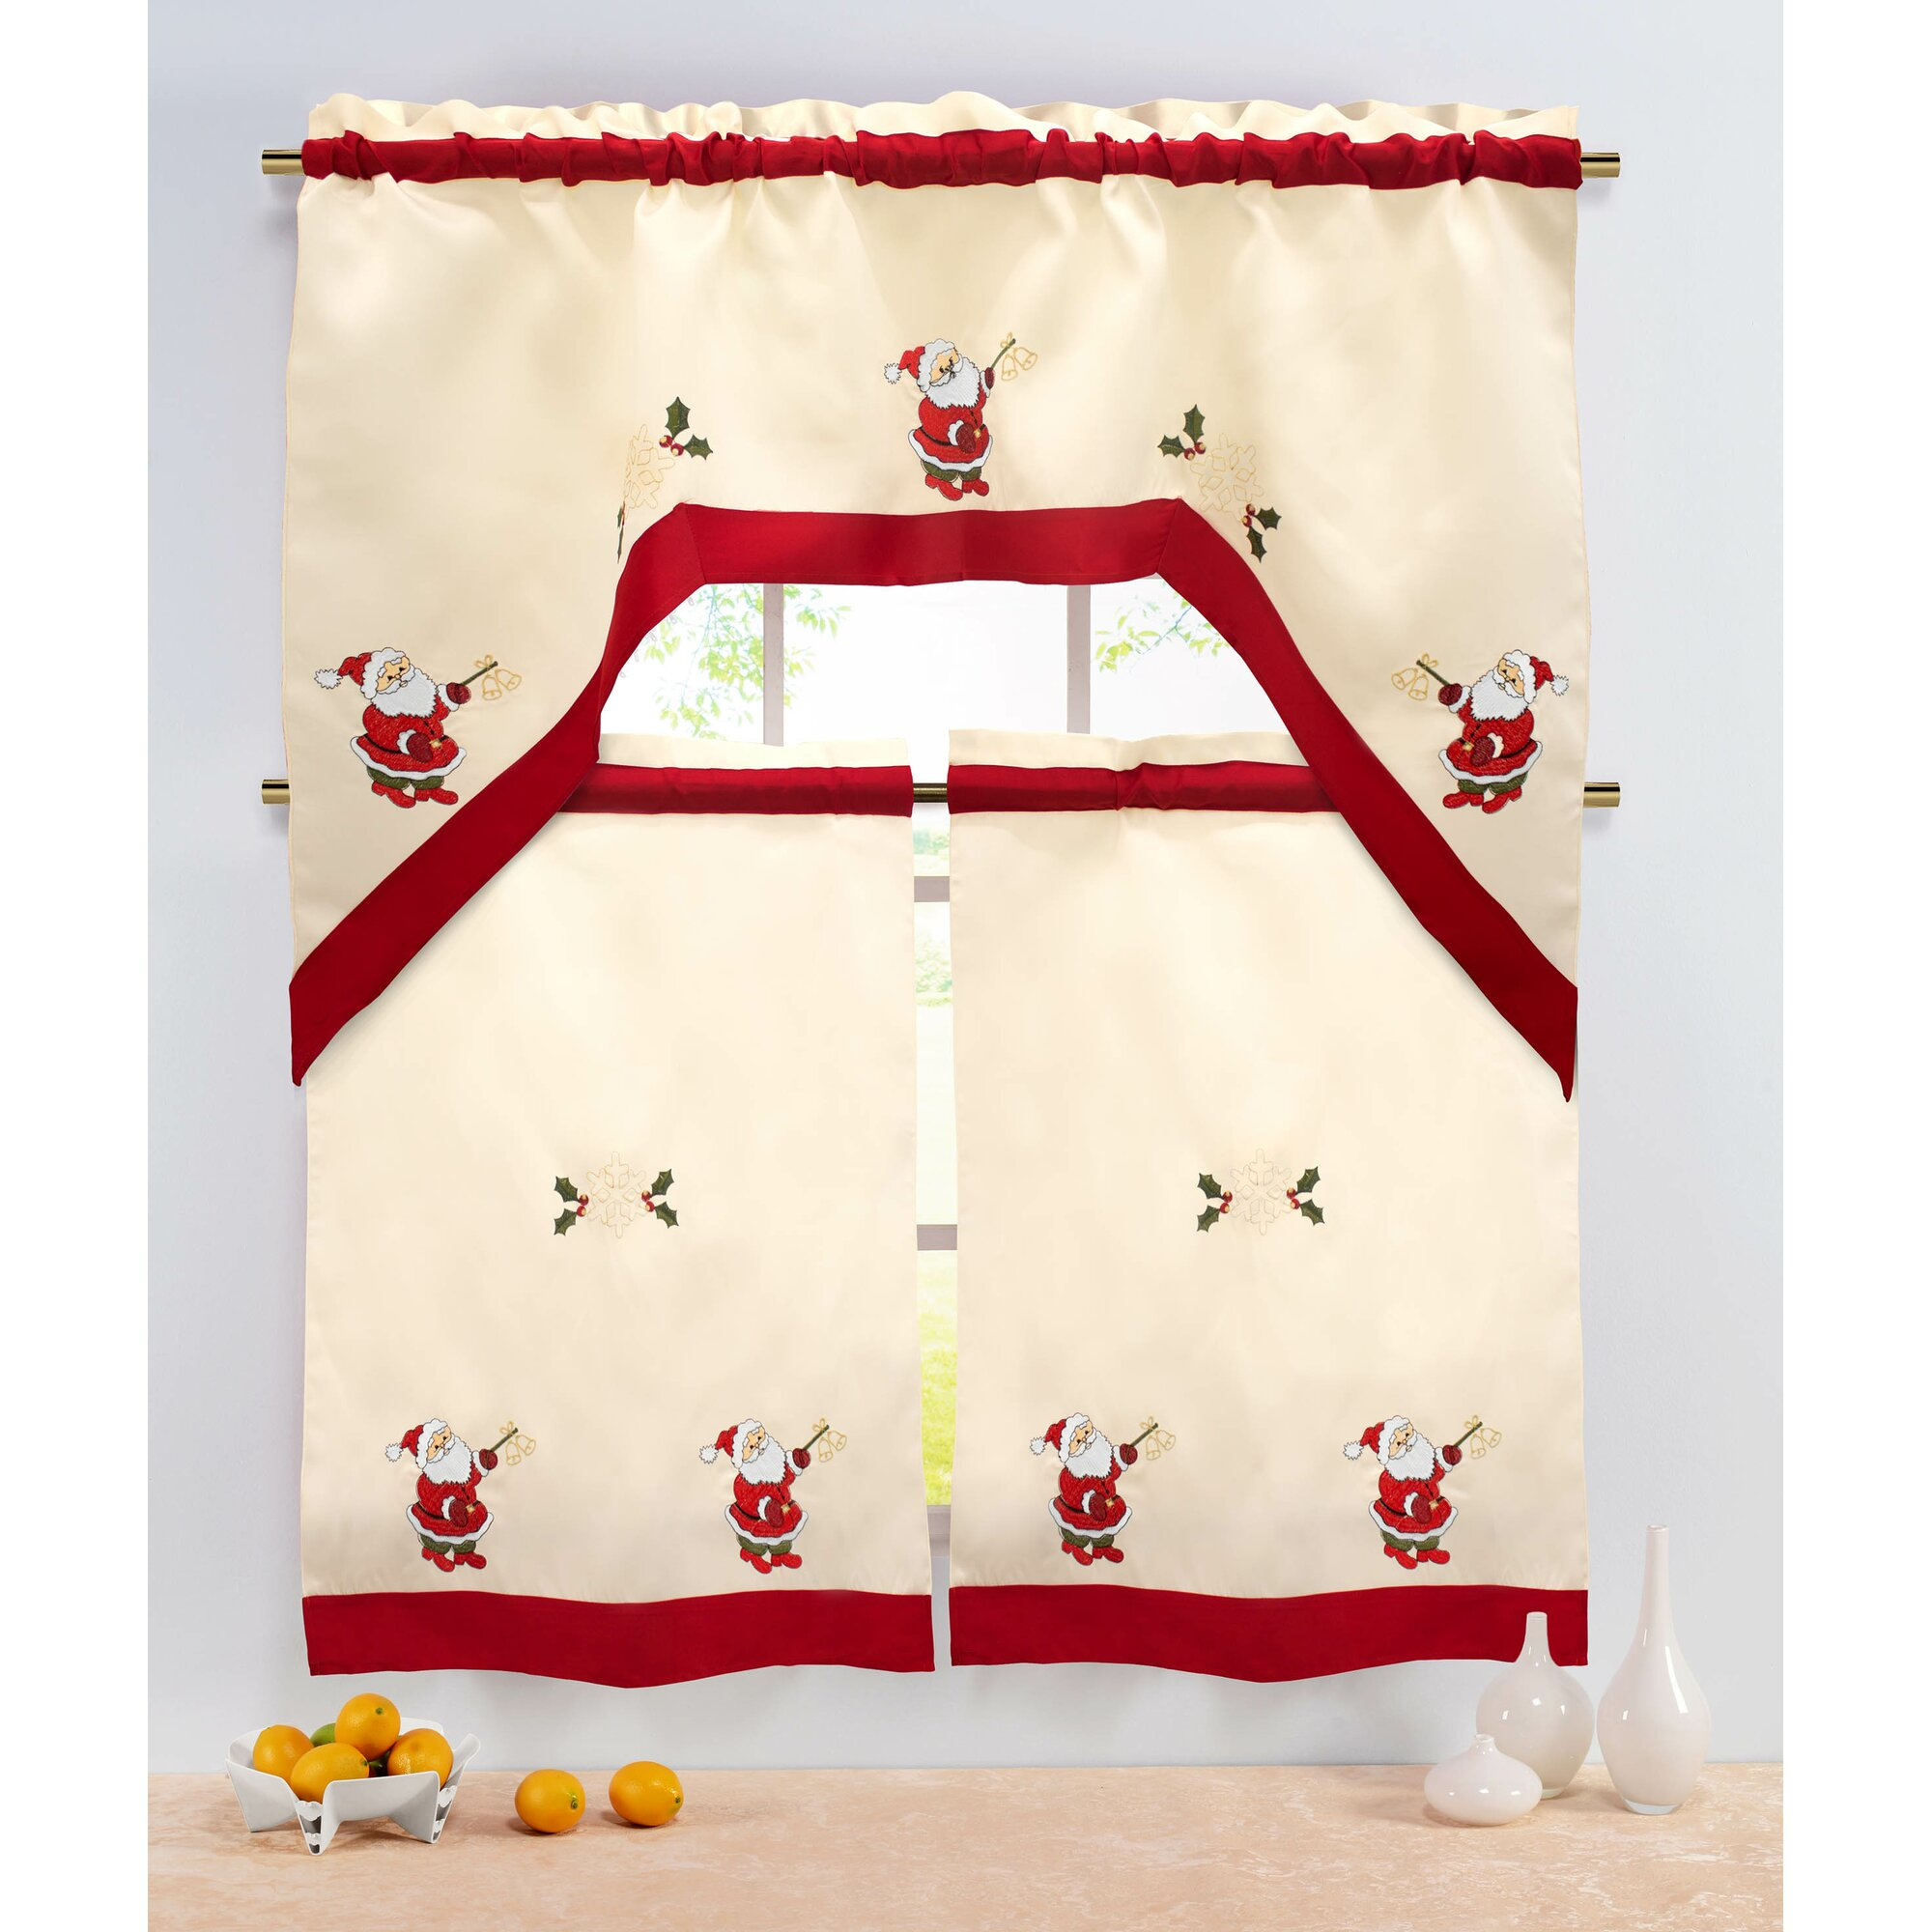 Kitchen Christmas Curtains Amazon Com: The Holiday Aisle Holiday Santa Embroidered Sheer 3 Piece